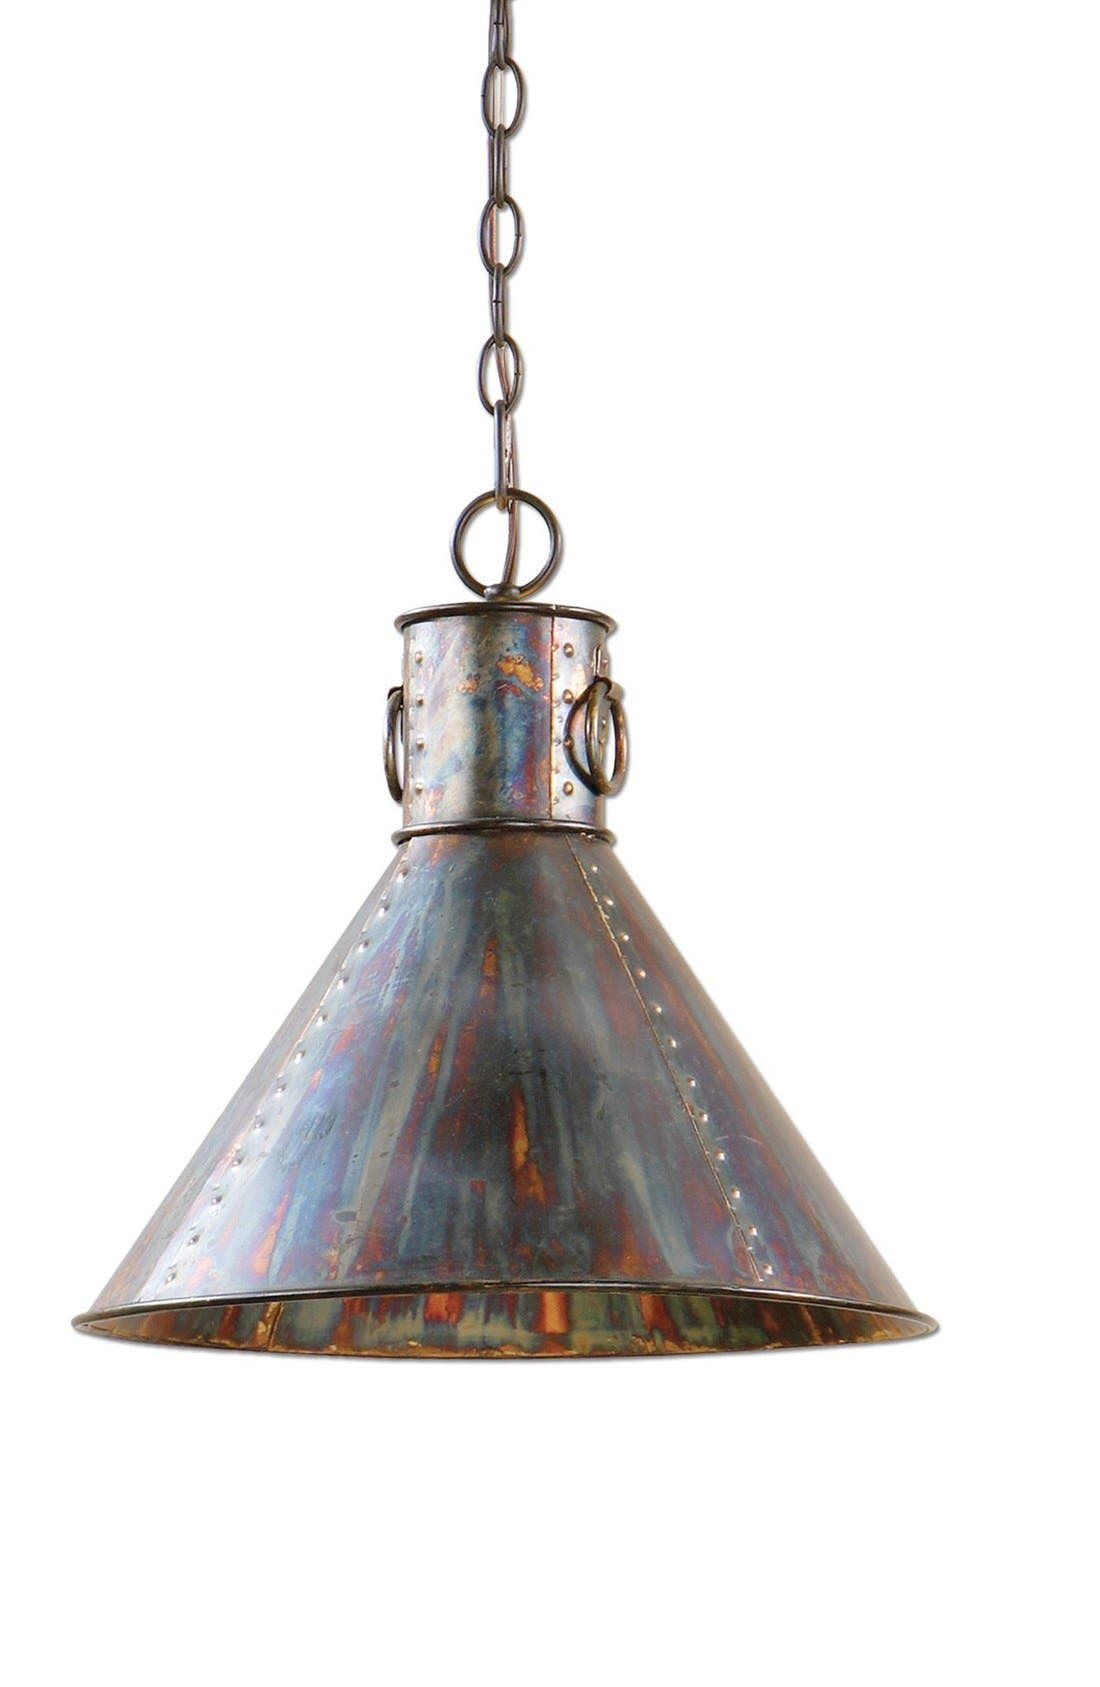 Alternate Image 1 Selected - Uttermost 'Albiano Series - Levone' Oxidized Bronze Pendant Lamp